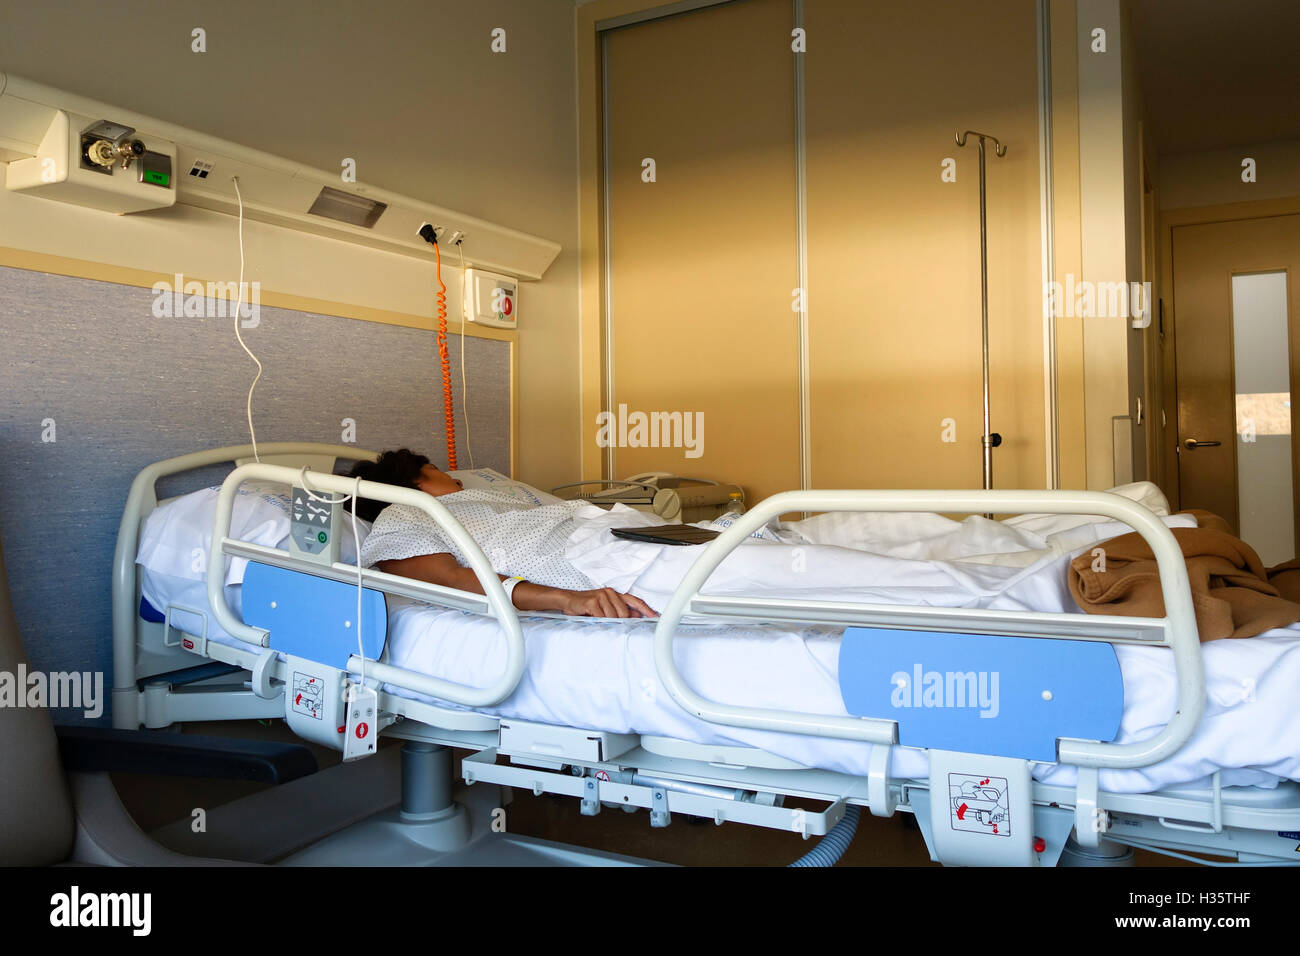 Evening Light In Room, Woman, Lying In Hospital Bed.